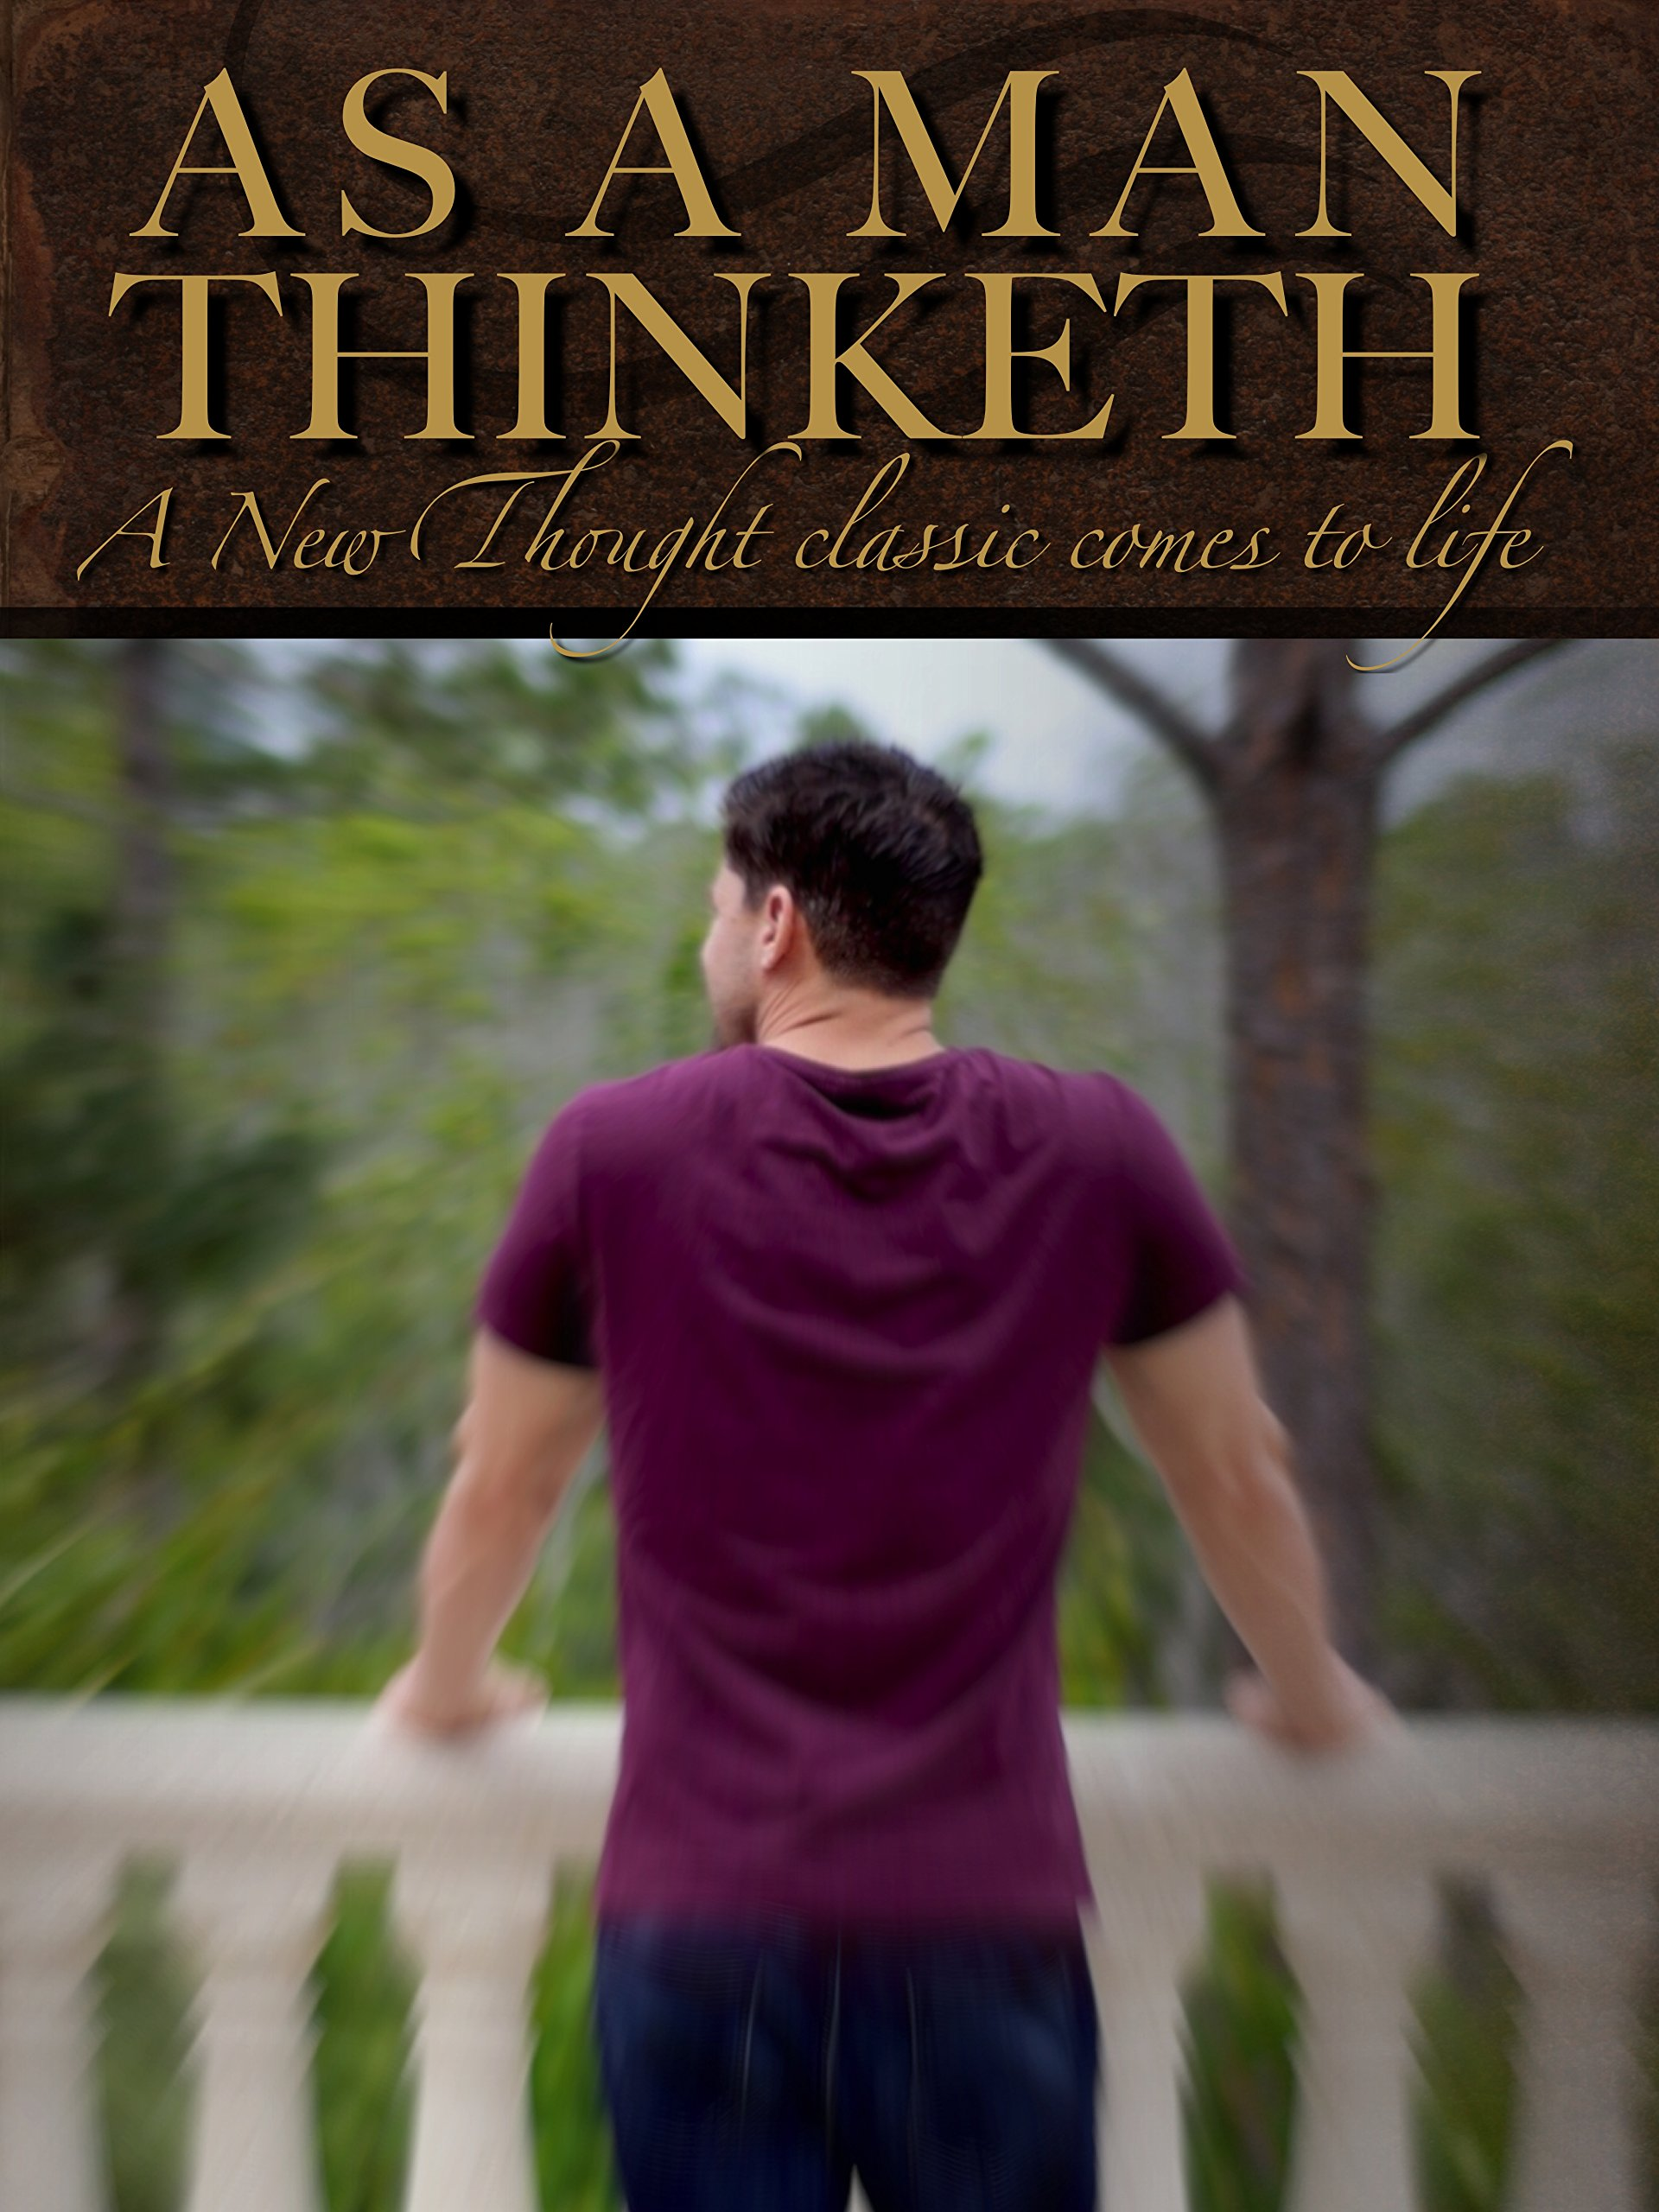 As a Man Thinketh: A New Thought classic comes to life on Amazon Prime Video UK